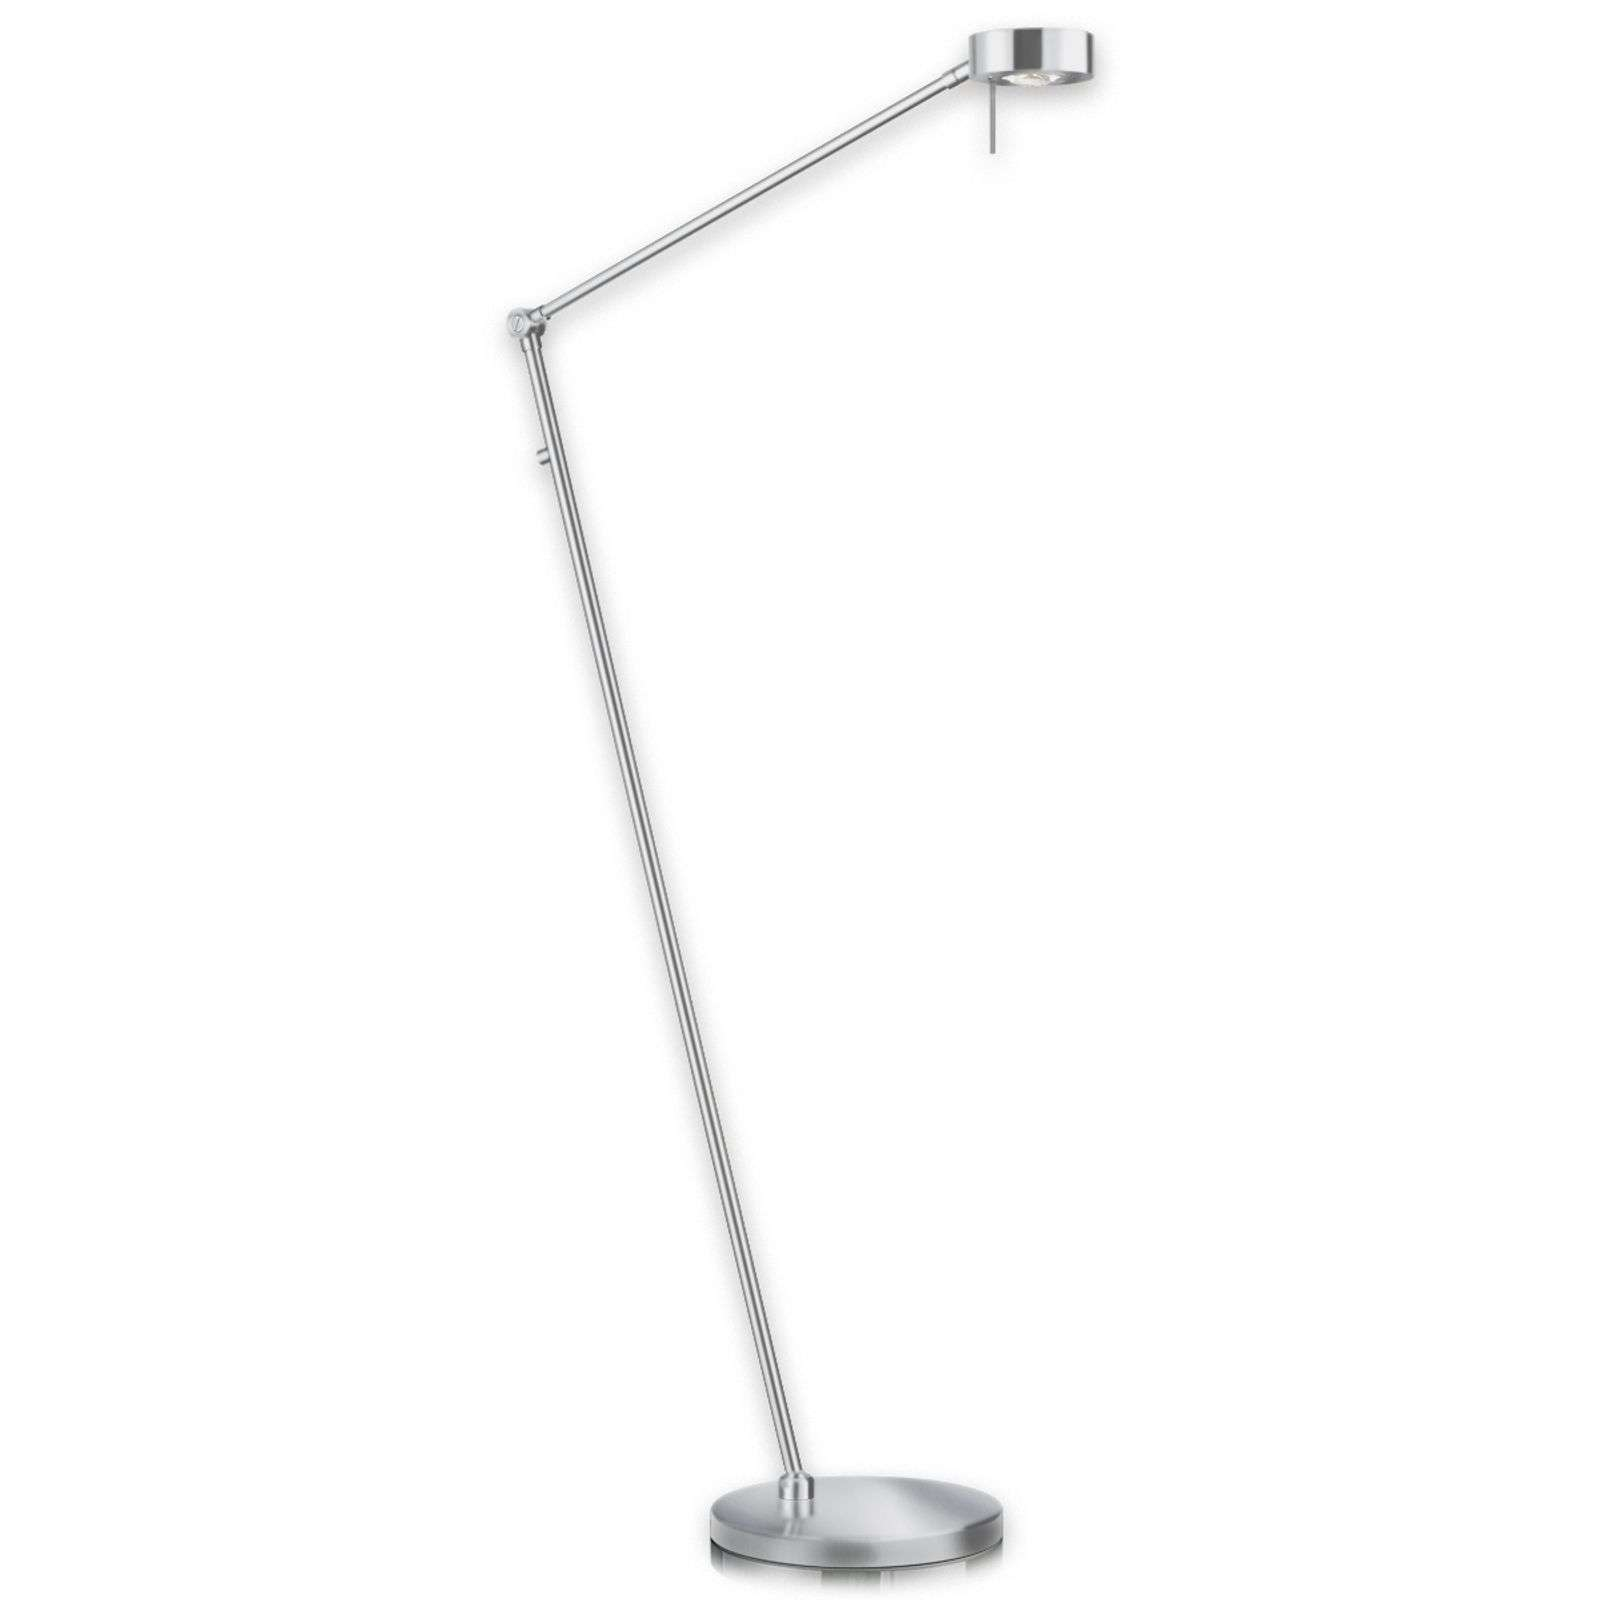 Lampadaire LED Elegance à 3 articulations nickel